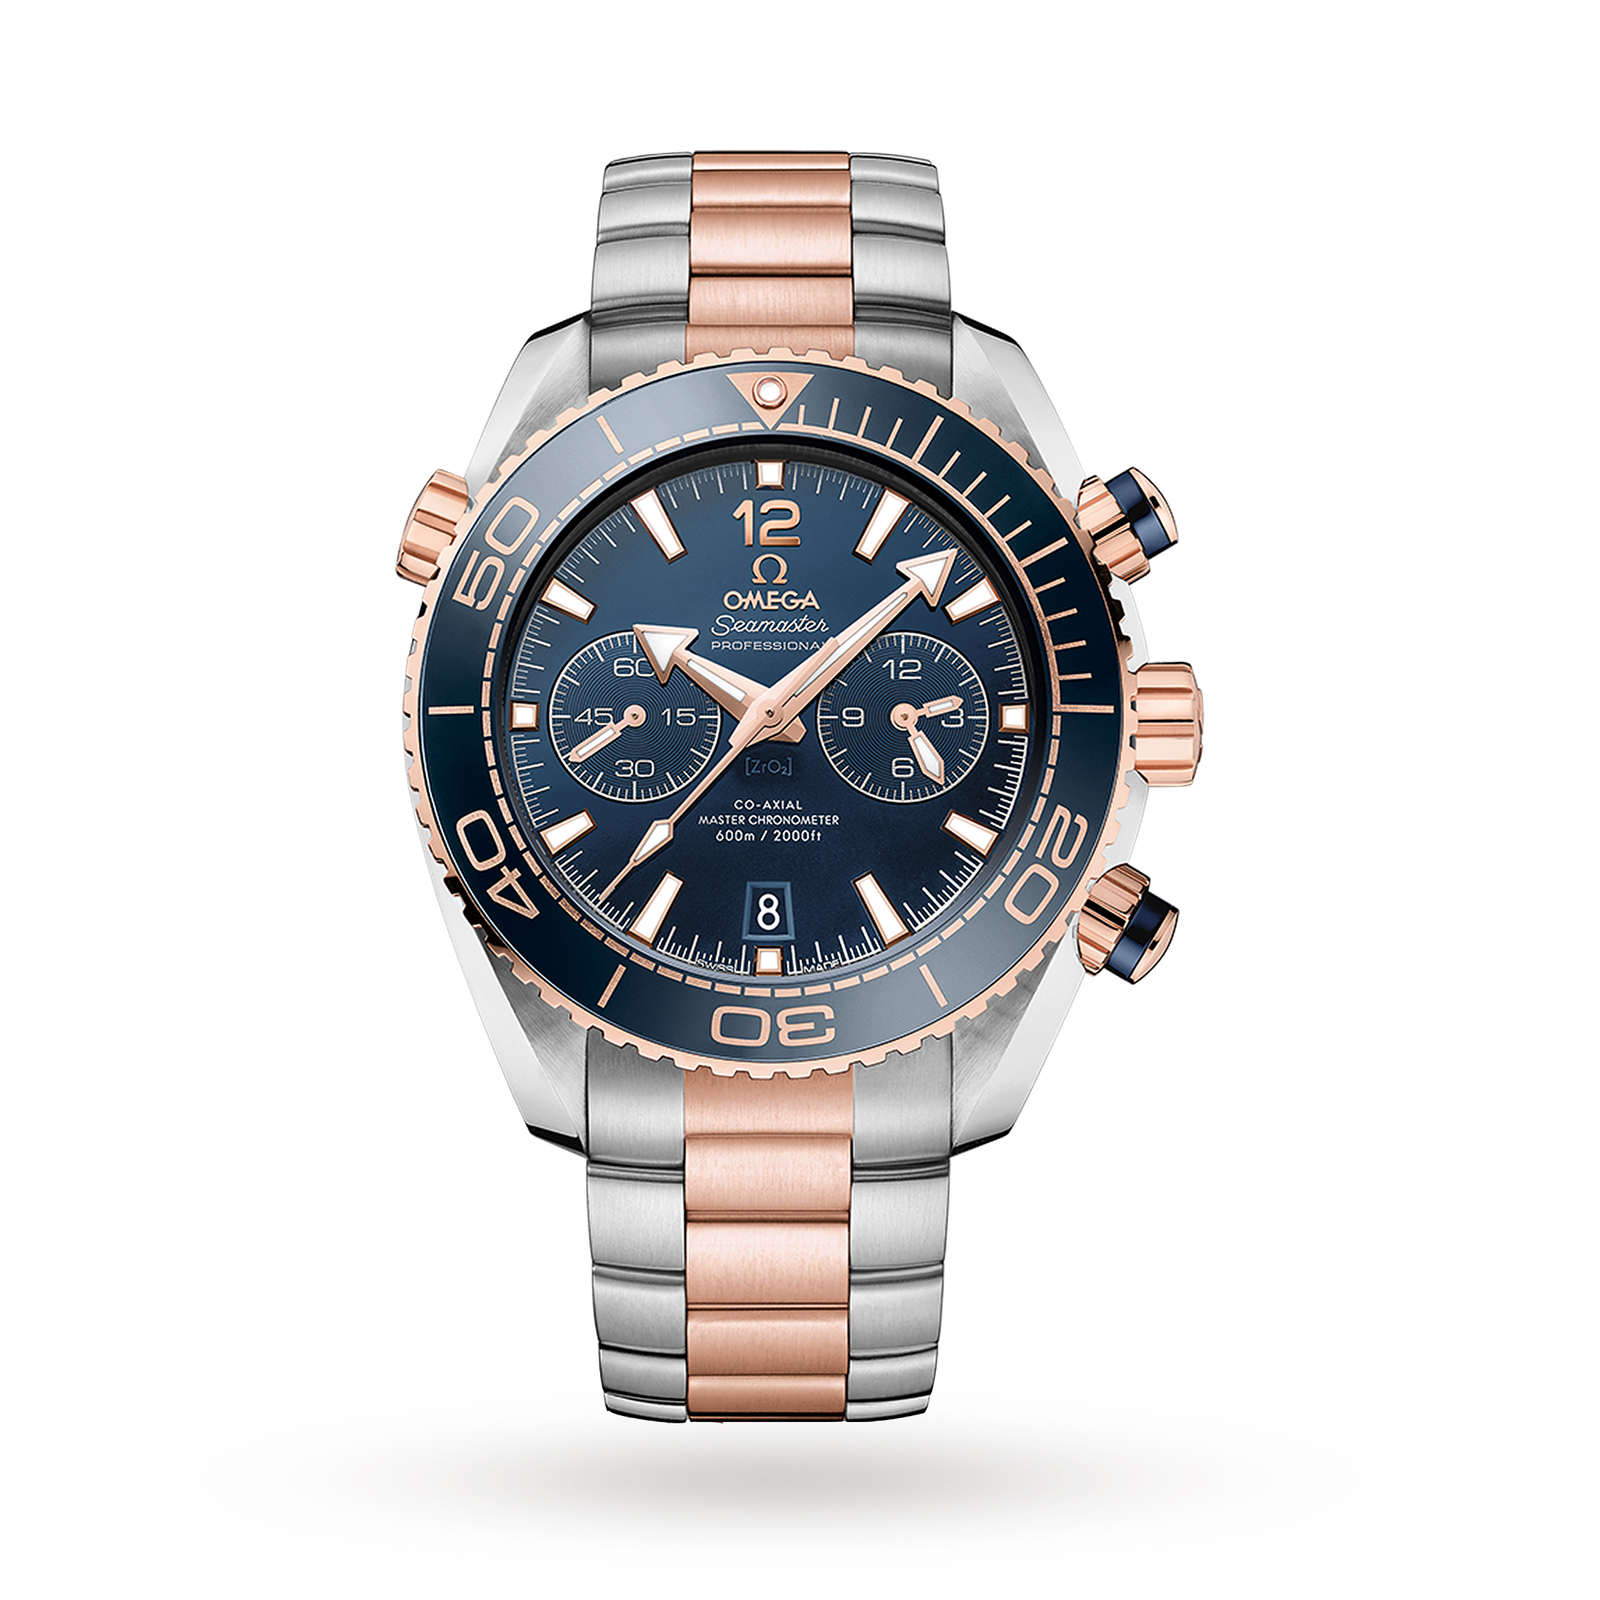 watches bat master for chronograph baselworld collection upgrade chronometer is watch ablogtowatch planet healthy seamaster at the omega ocean a